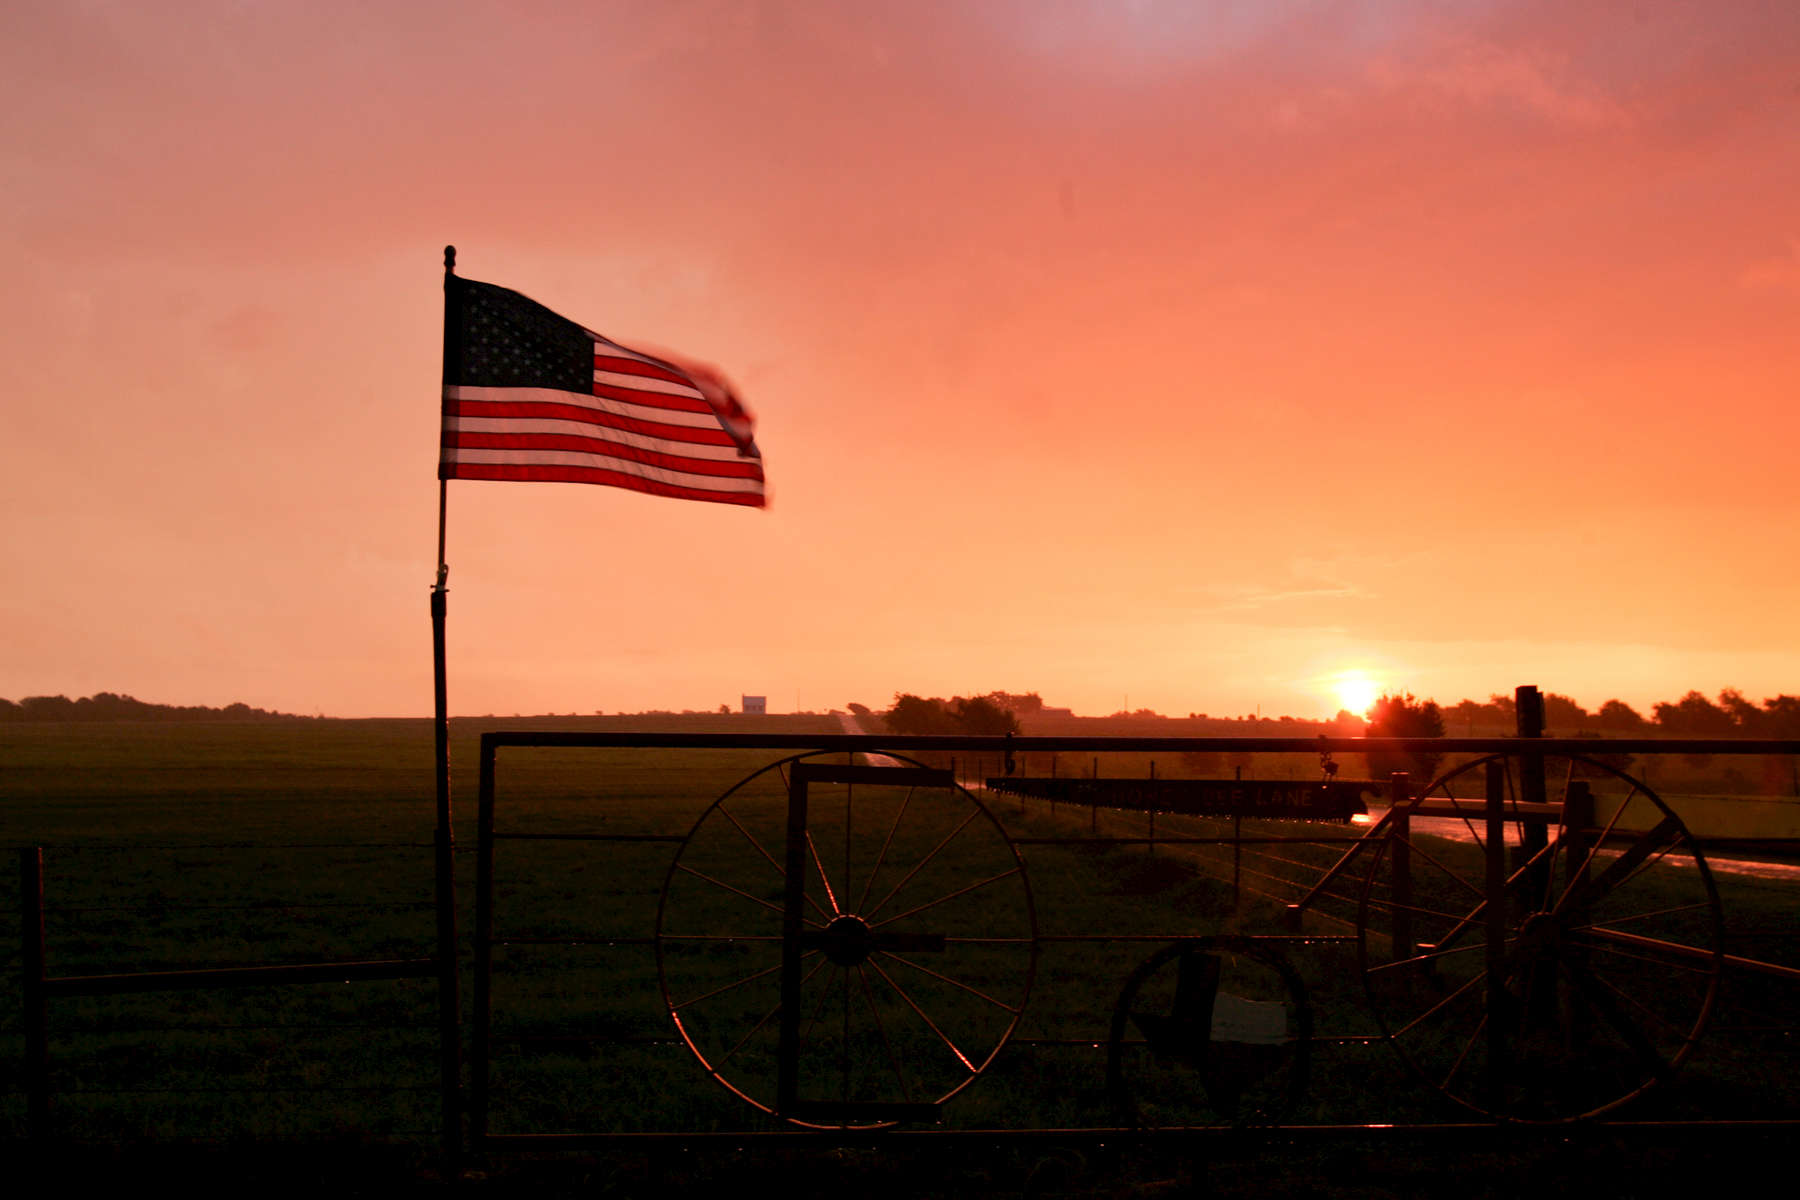 Sunrise in the rain at Prairie Chapel road. American flag.